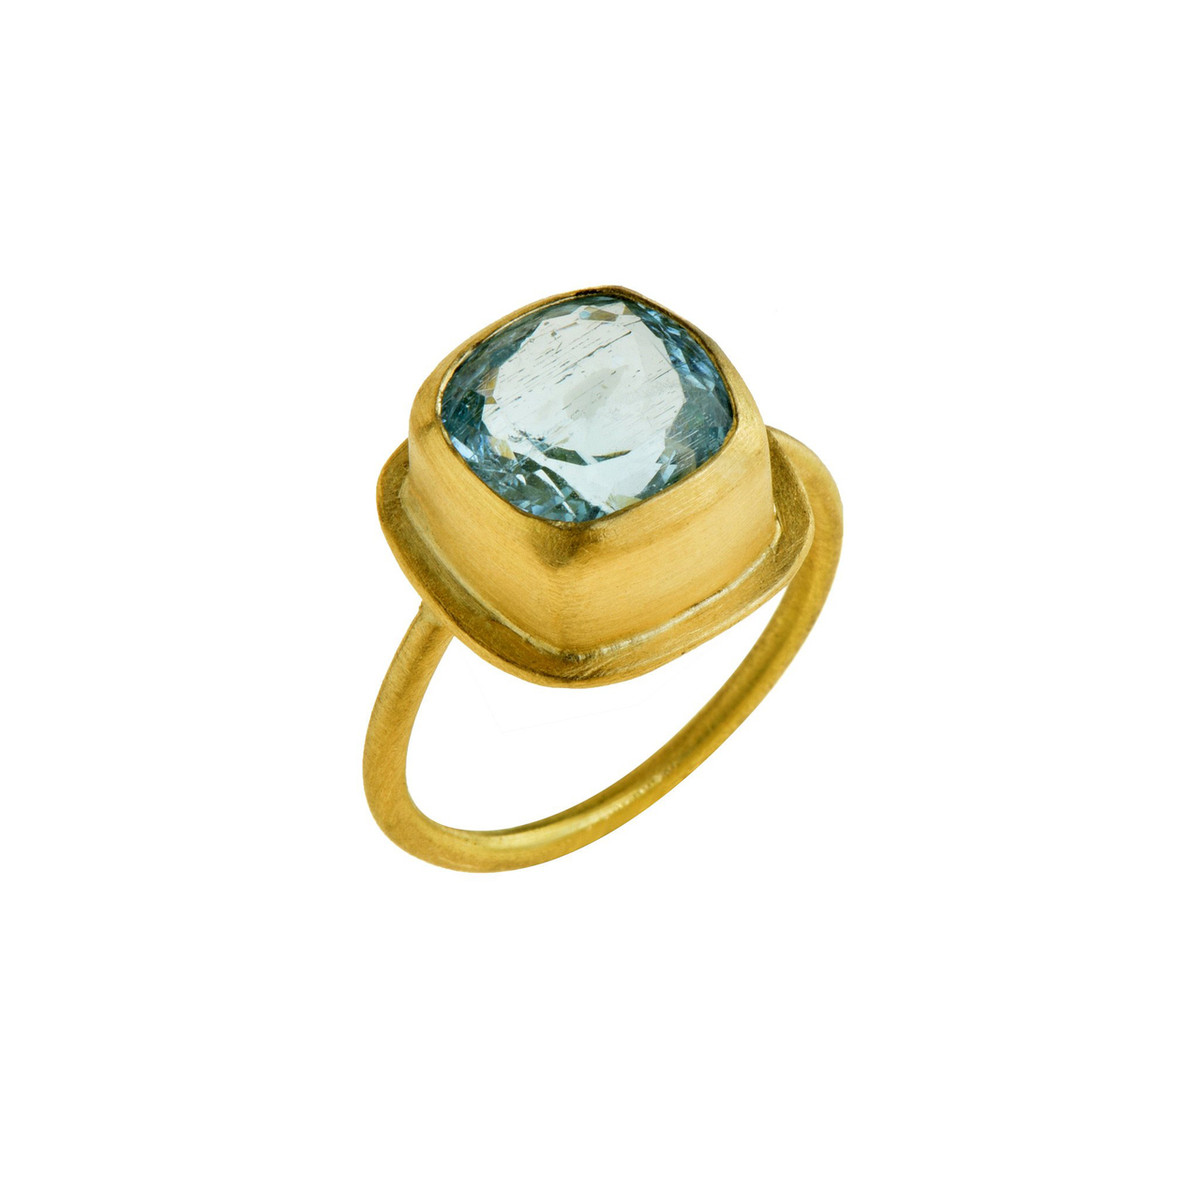 Skylight Blue Topaz Ring by Nava Zahavi - New Arrival